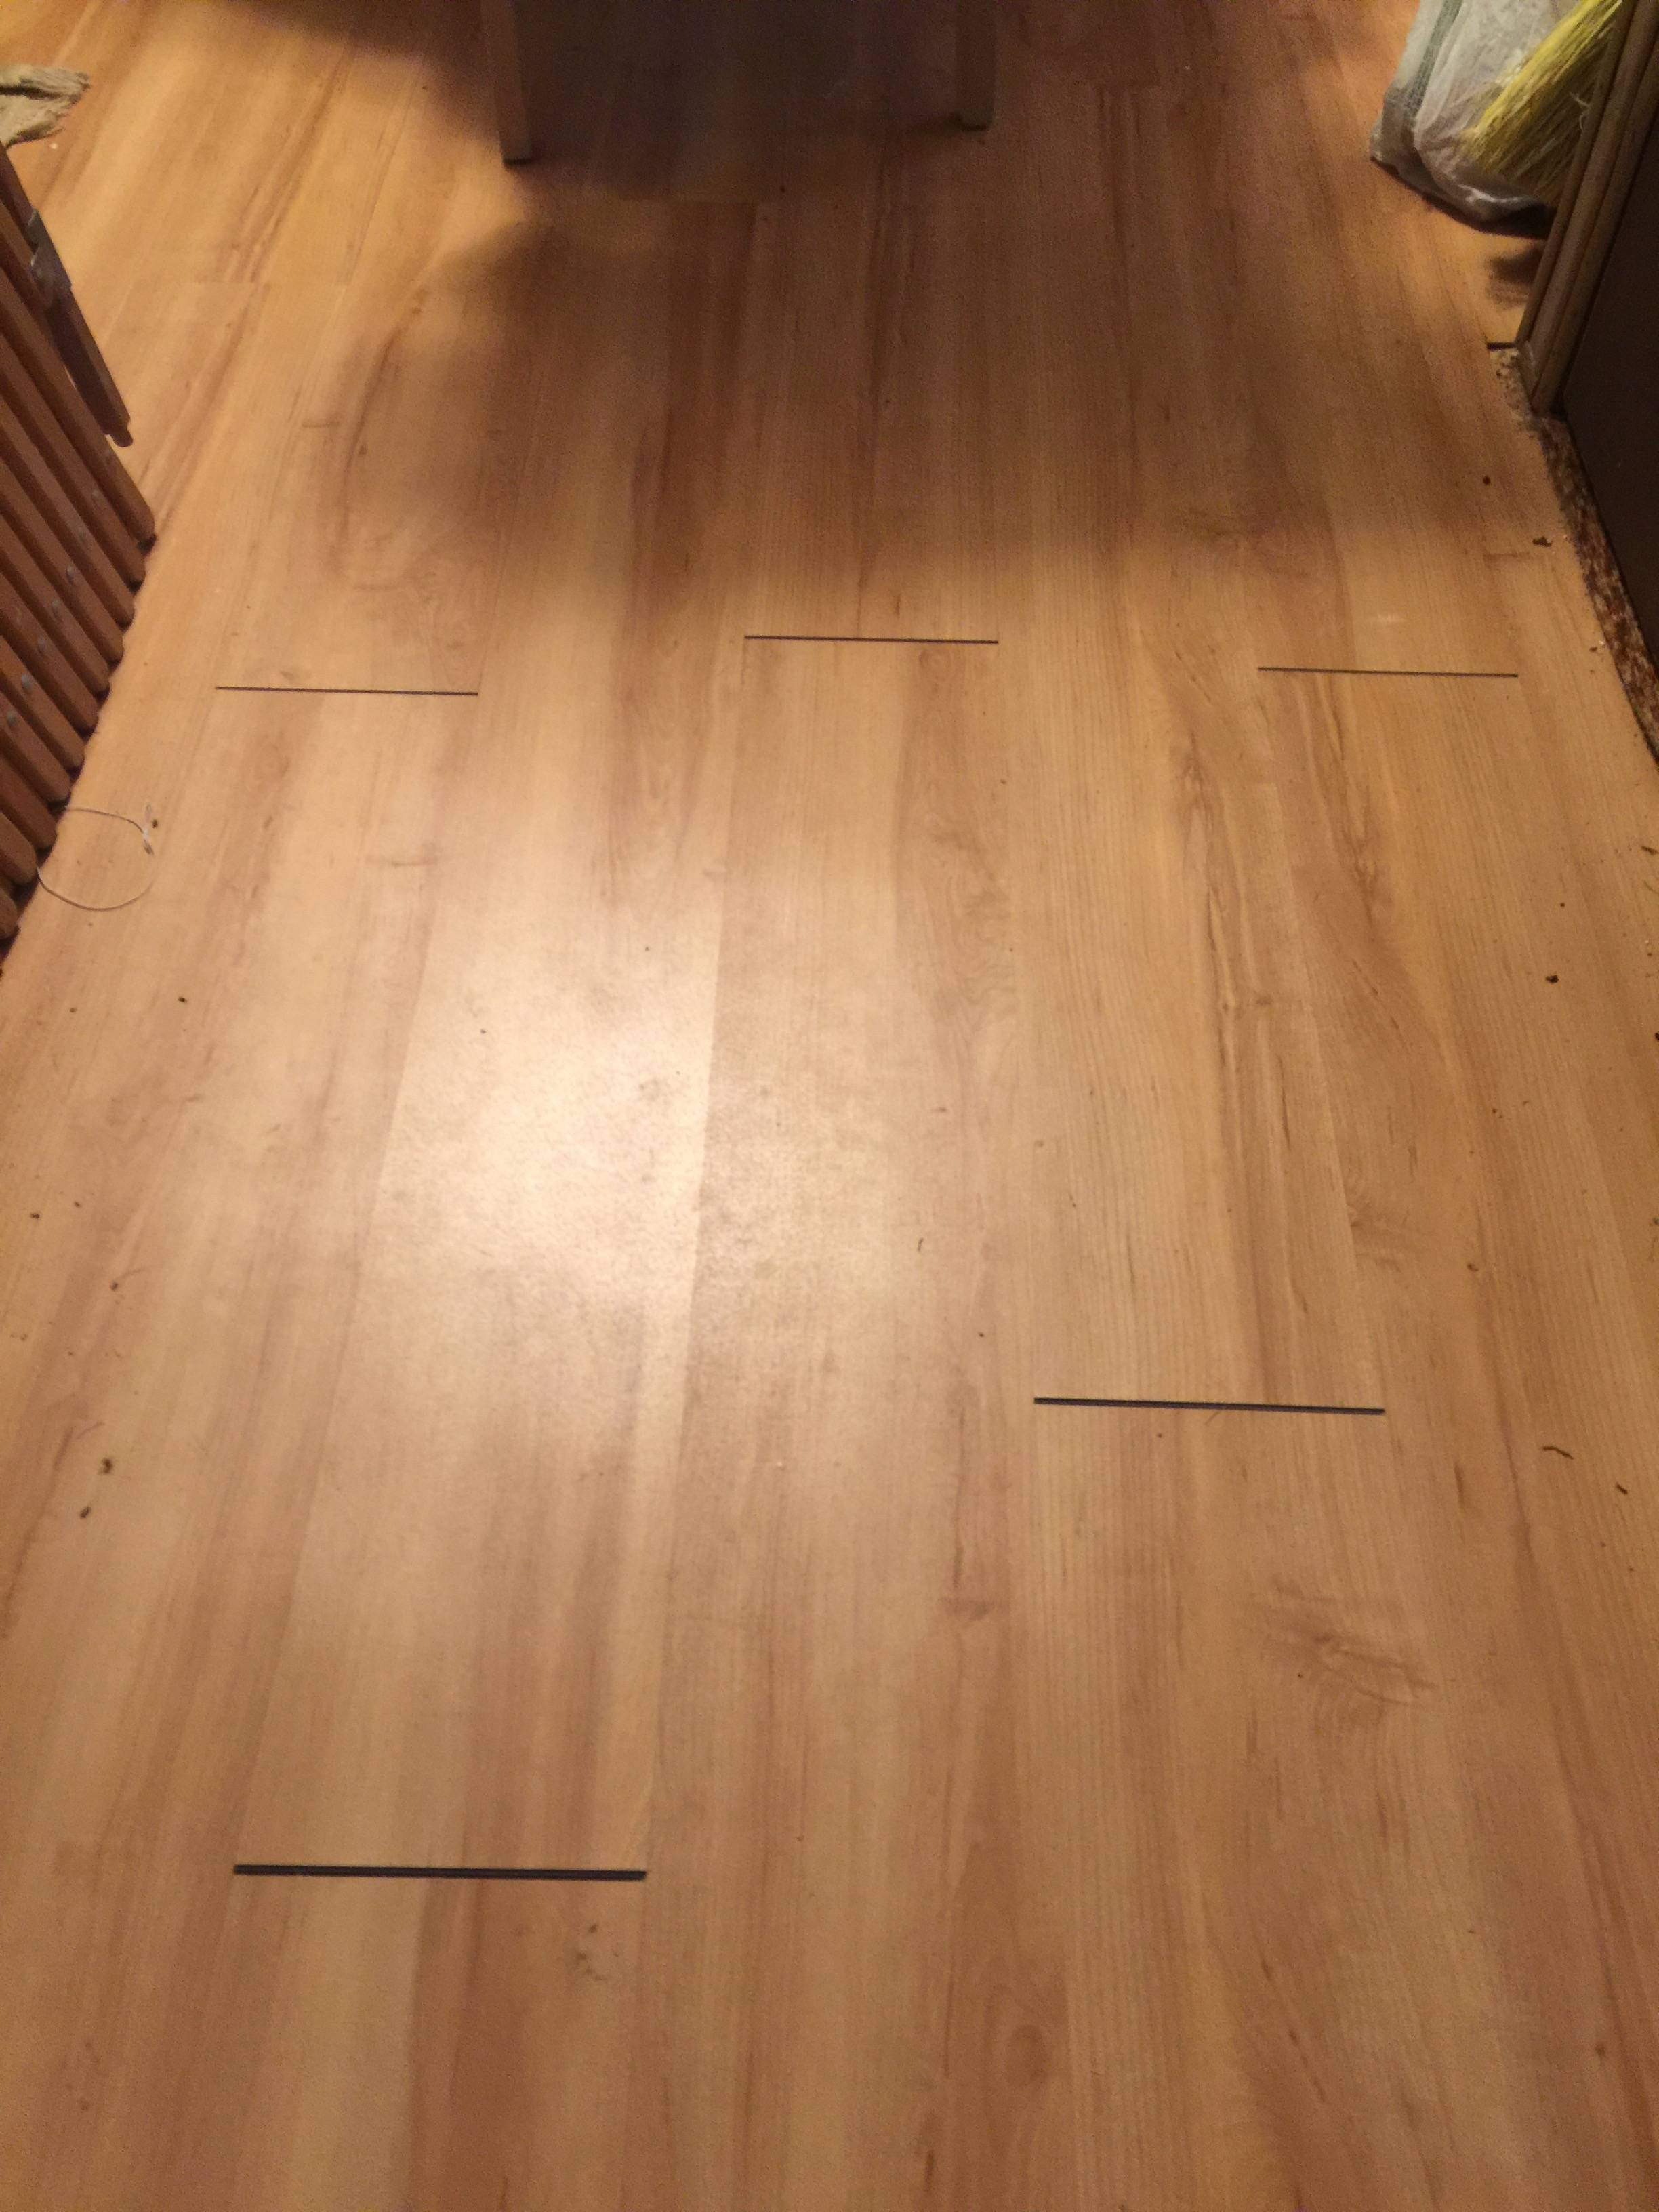 Wood Floor Slats Separating2448 X 3264